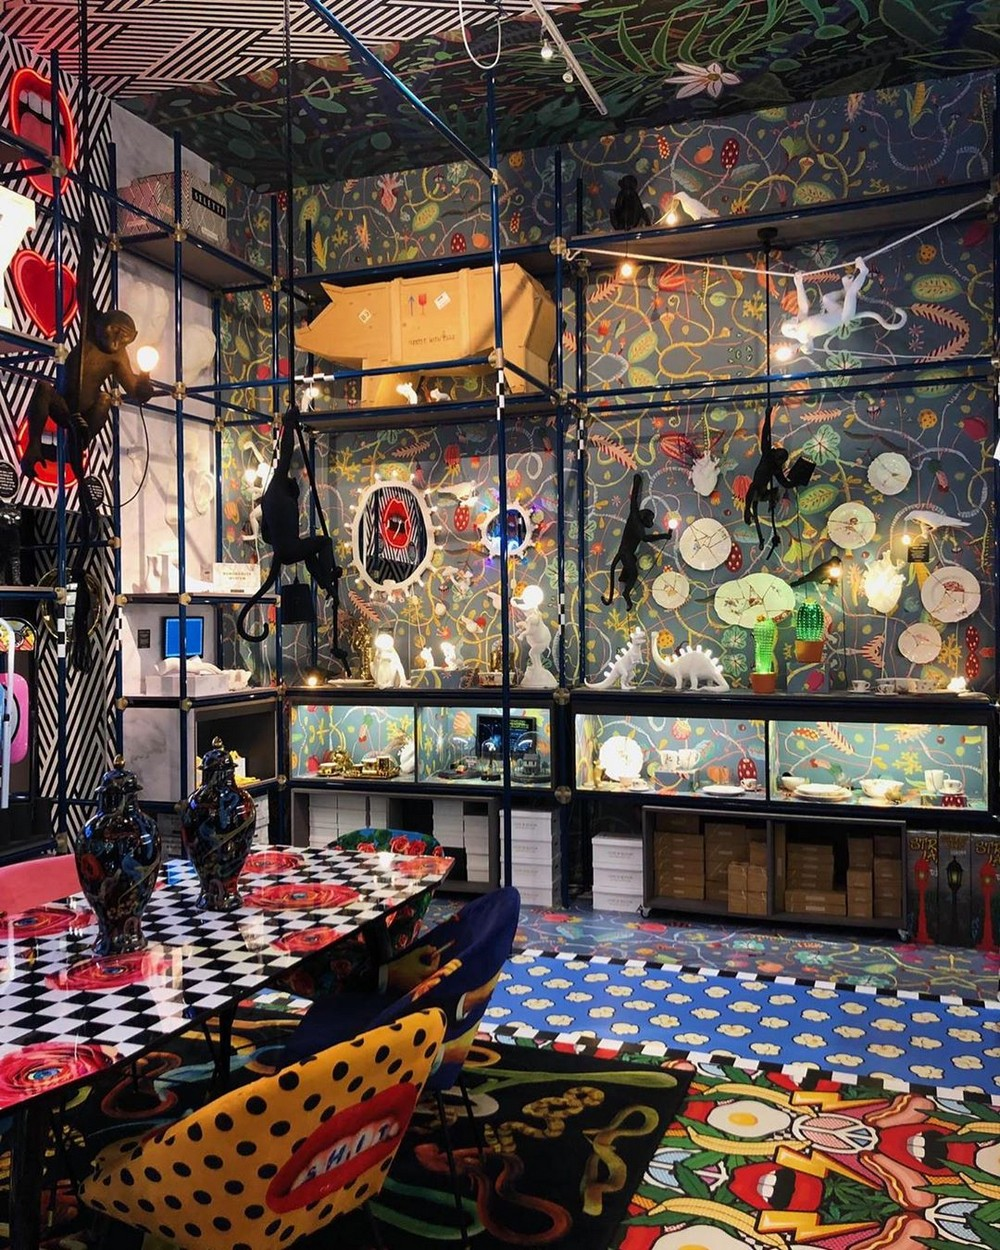 maison et objet 2020 Feast Your Eyes to the Best Moments of Maison et Objet 2020 Feast Your Eyes to the Best Moments of Maison et Objet 2020 48